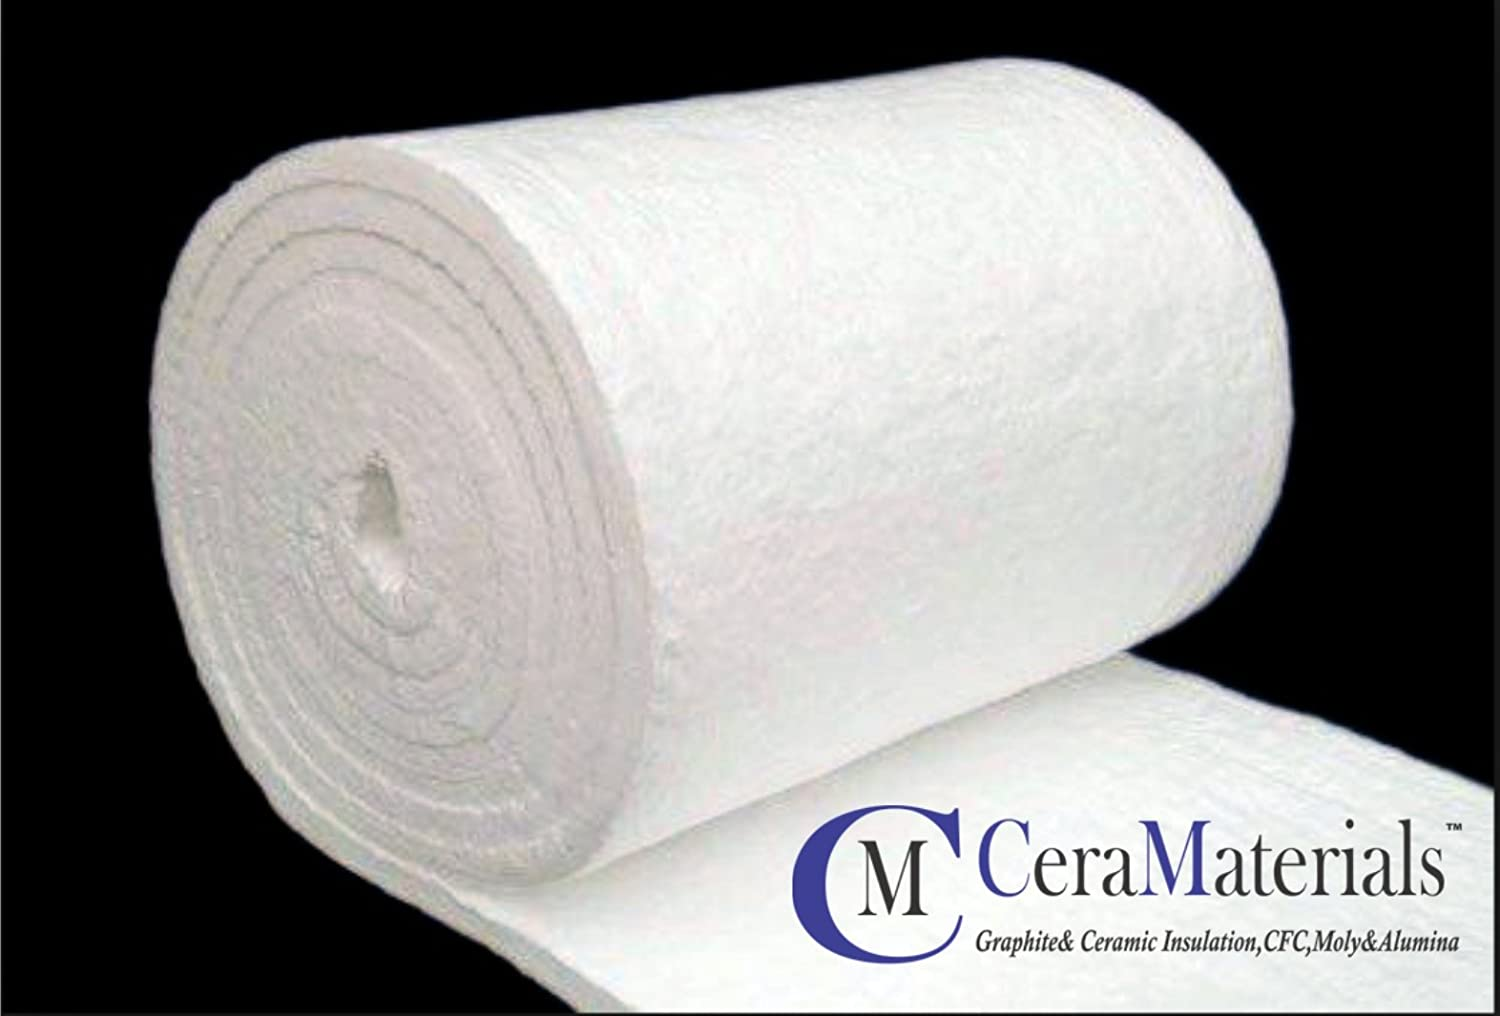 Ceramic Fiber Blanket (8#, 2300F)(2x24x12.5') for Ovens, Kilns, Furnaces, Glass Work, and Chimney Insulation CeraMaterials HPBL82024150